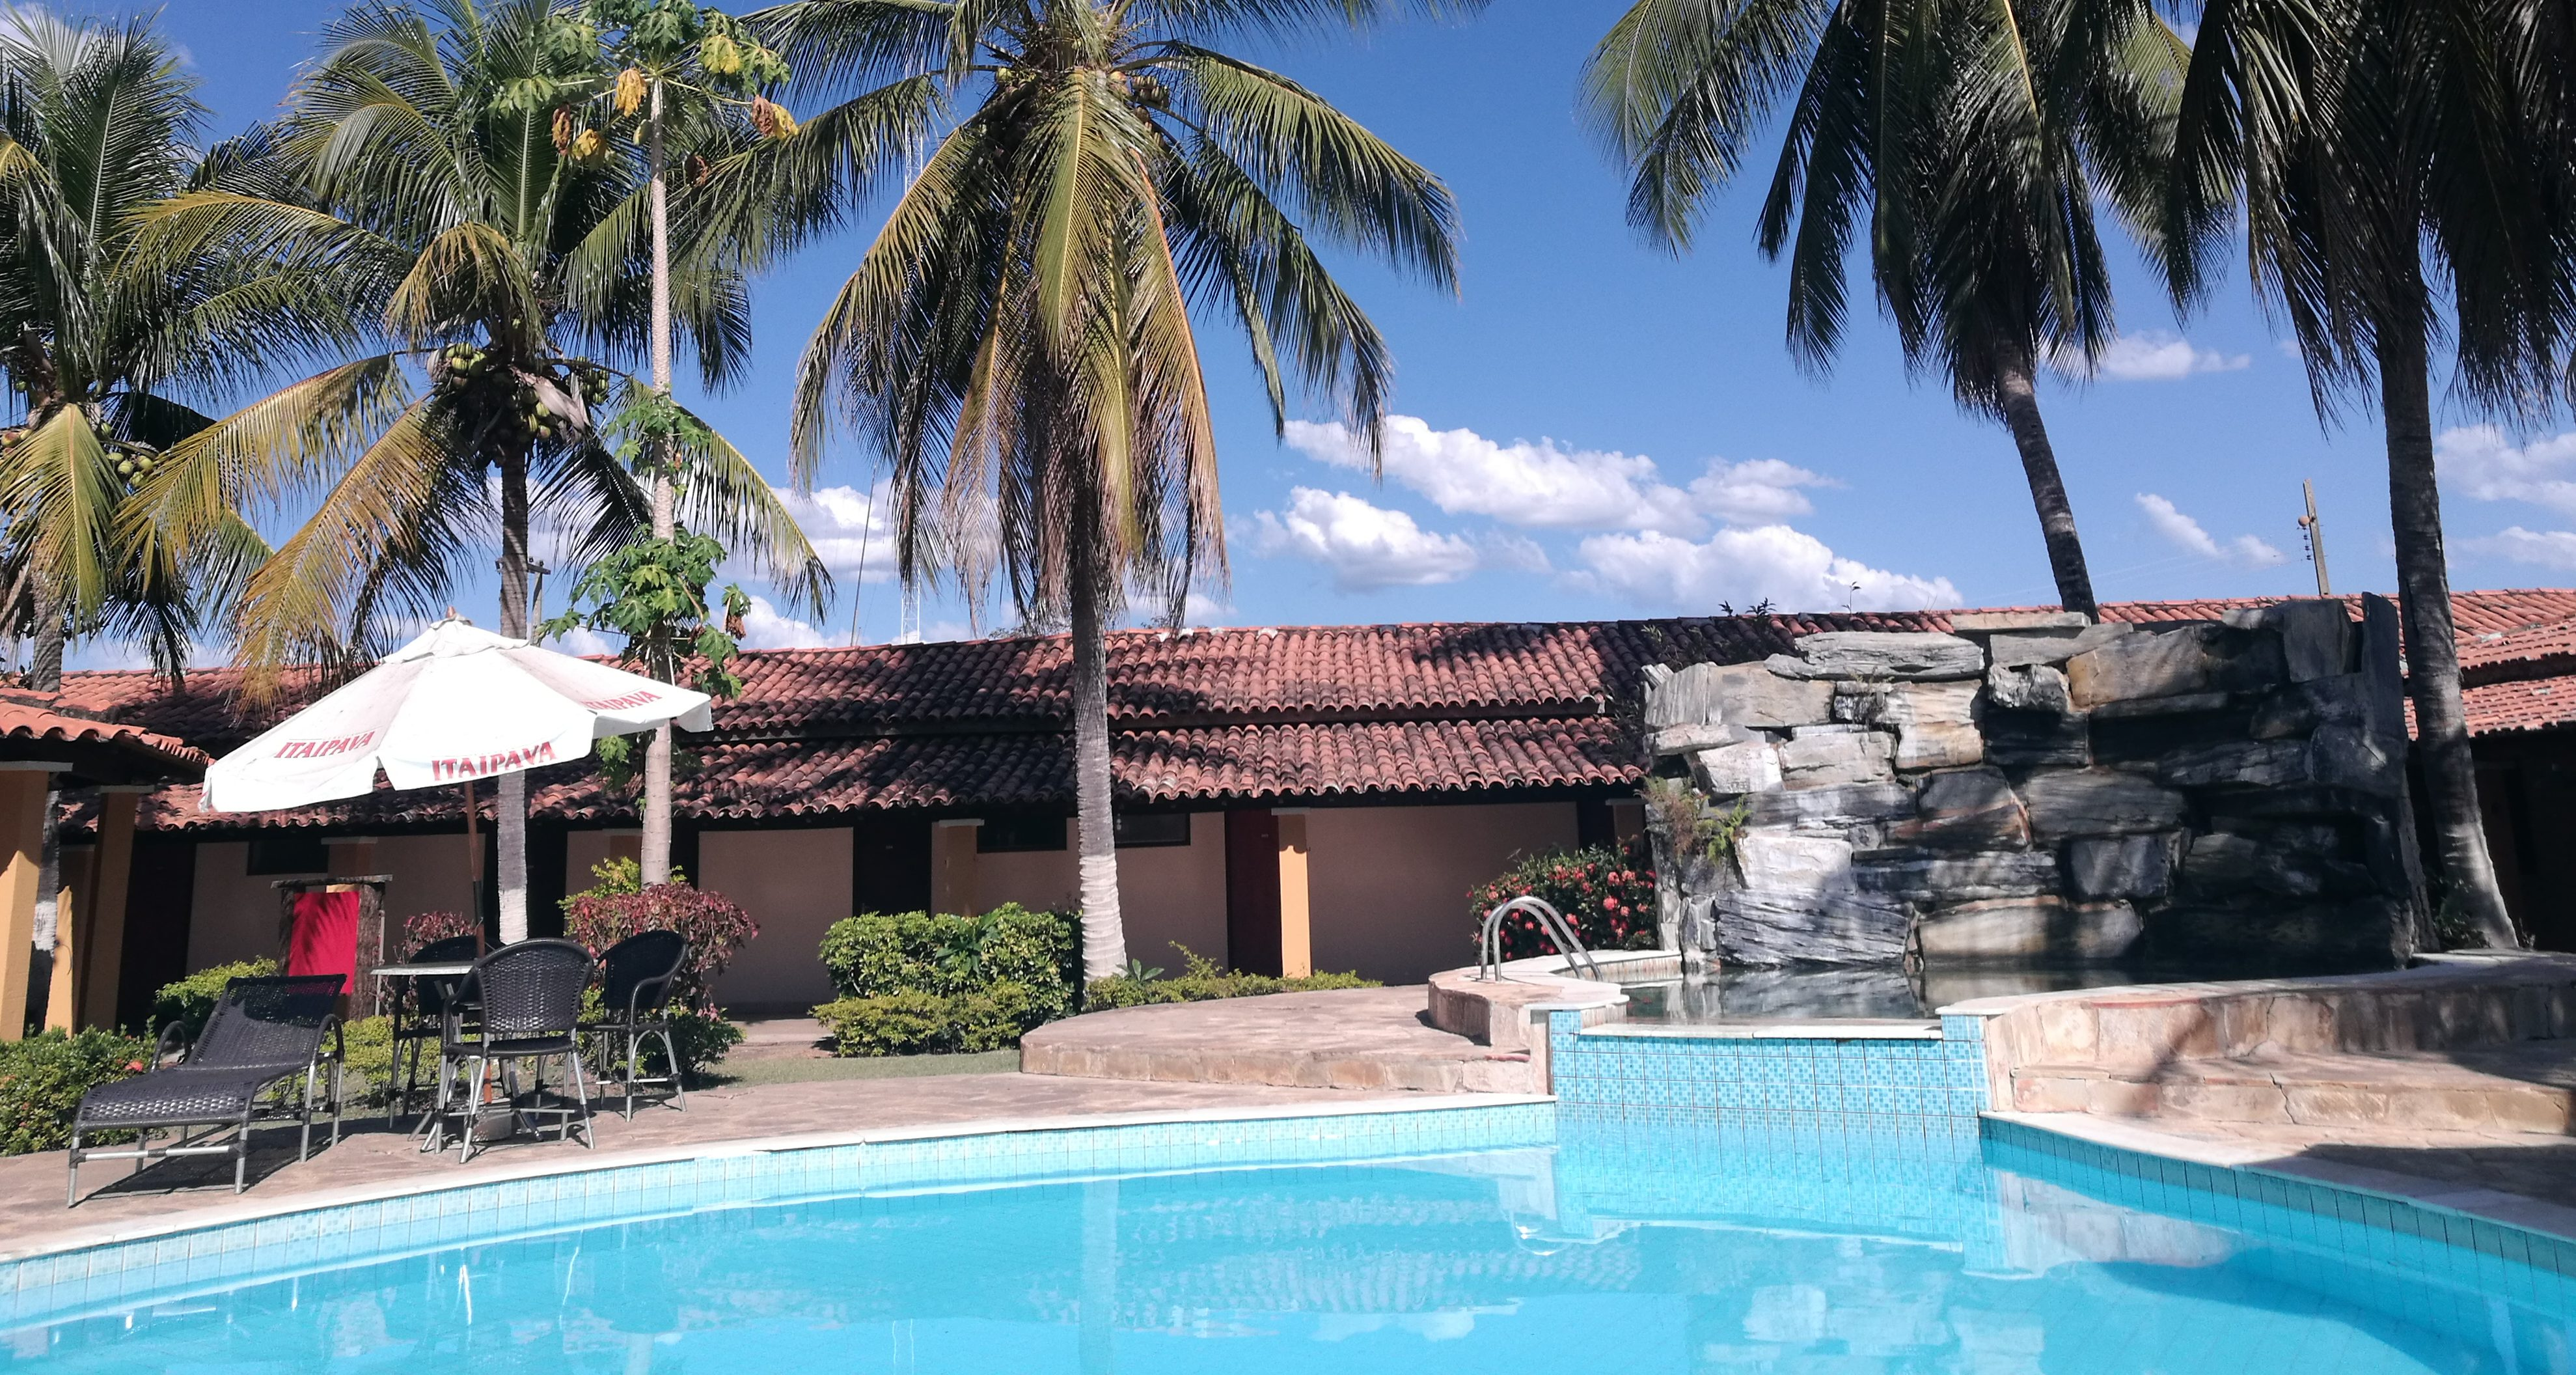 The hotel Pantanal Mato Grosso in Pixaim